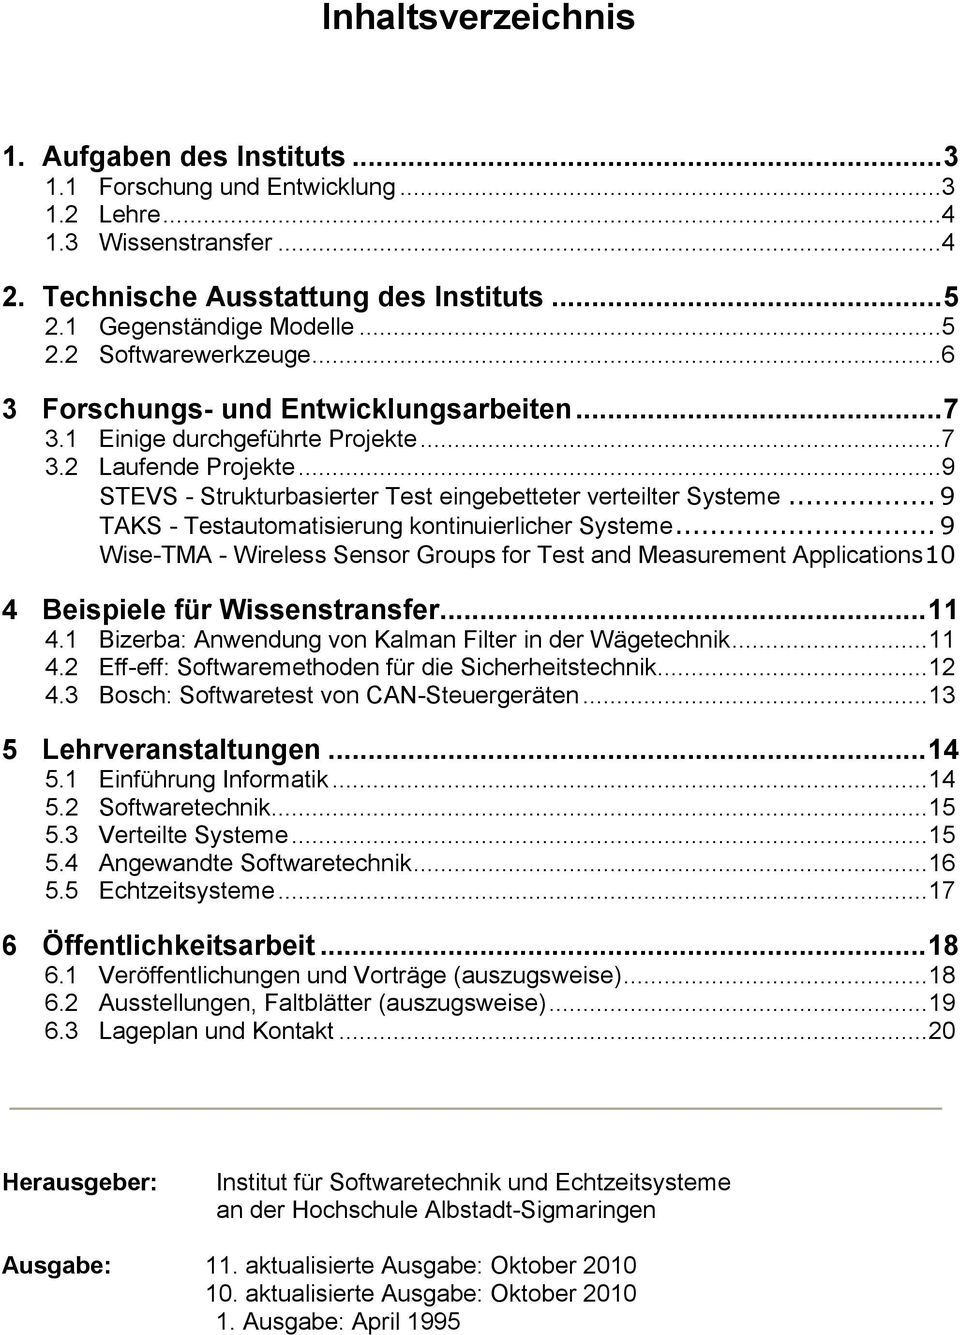 .. 9 TAKS - Testautomatisierung kontinuierlicher Systeme... 9 Wise-TMA - Wireless Sensor Groups for Test and Measurement Applications 10 4 Beispiele für Wissenstransfer... 11 4.